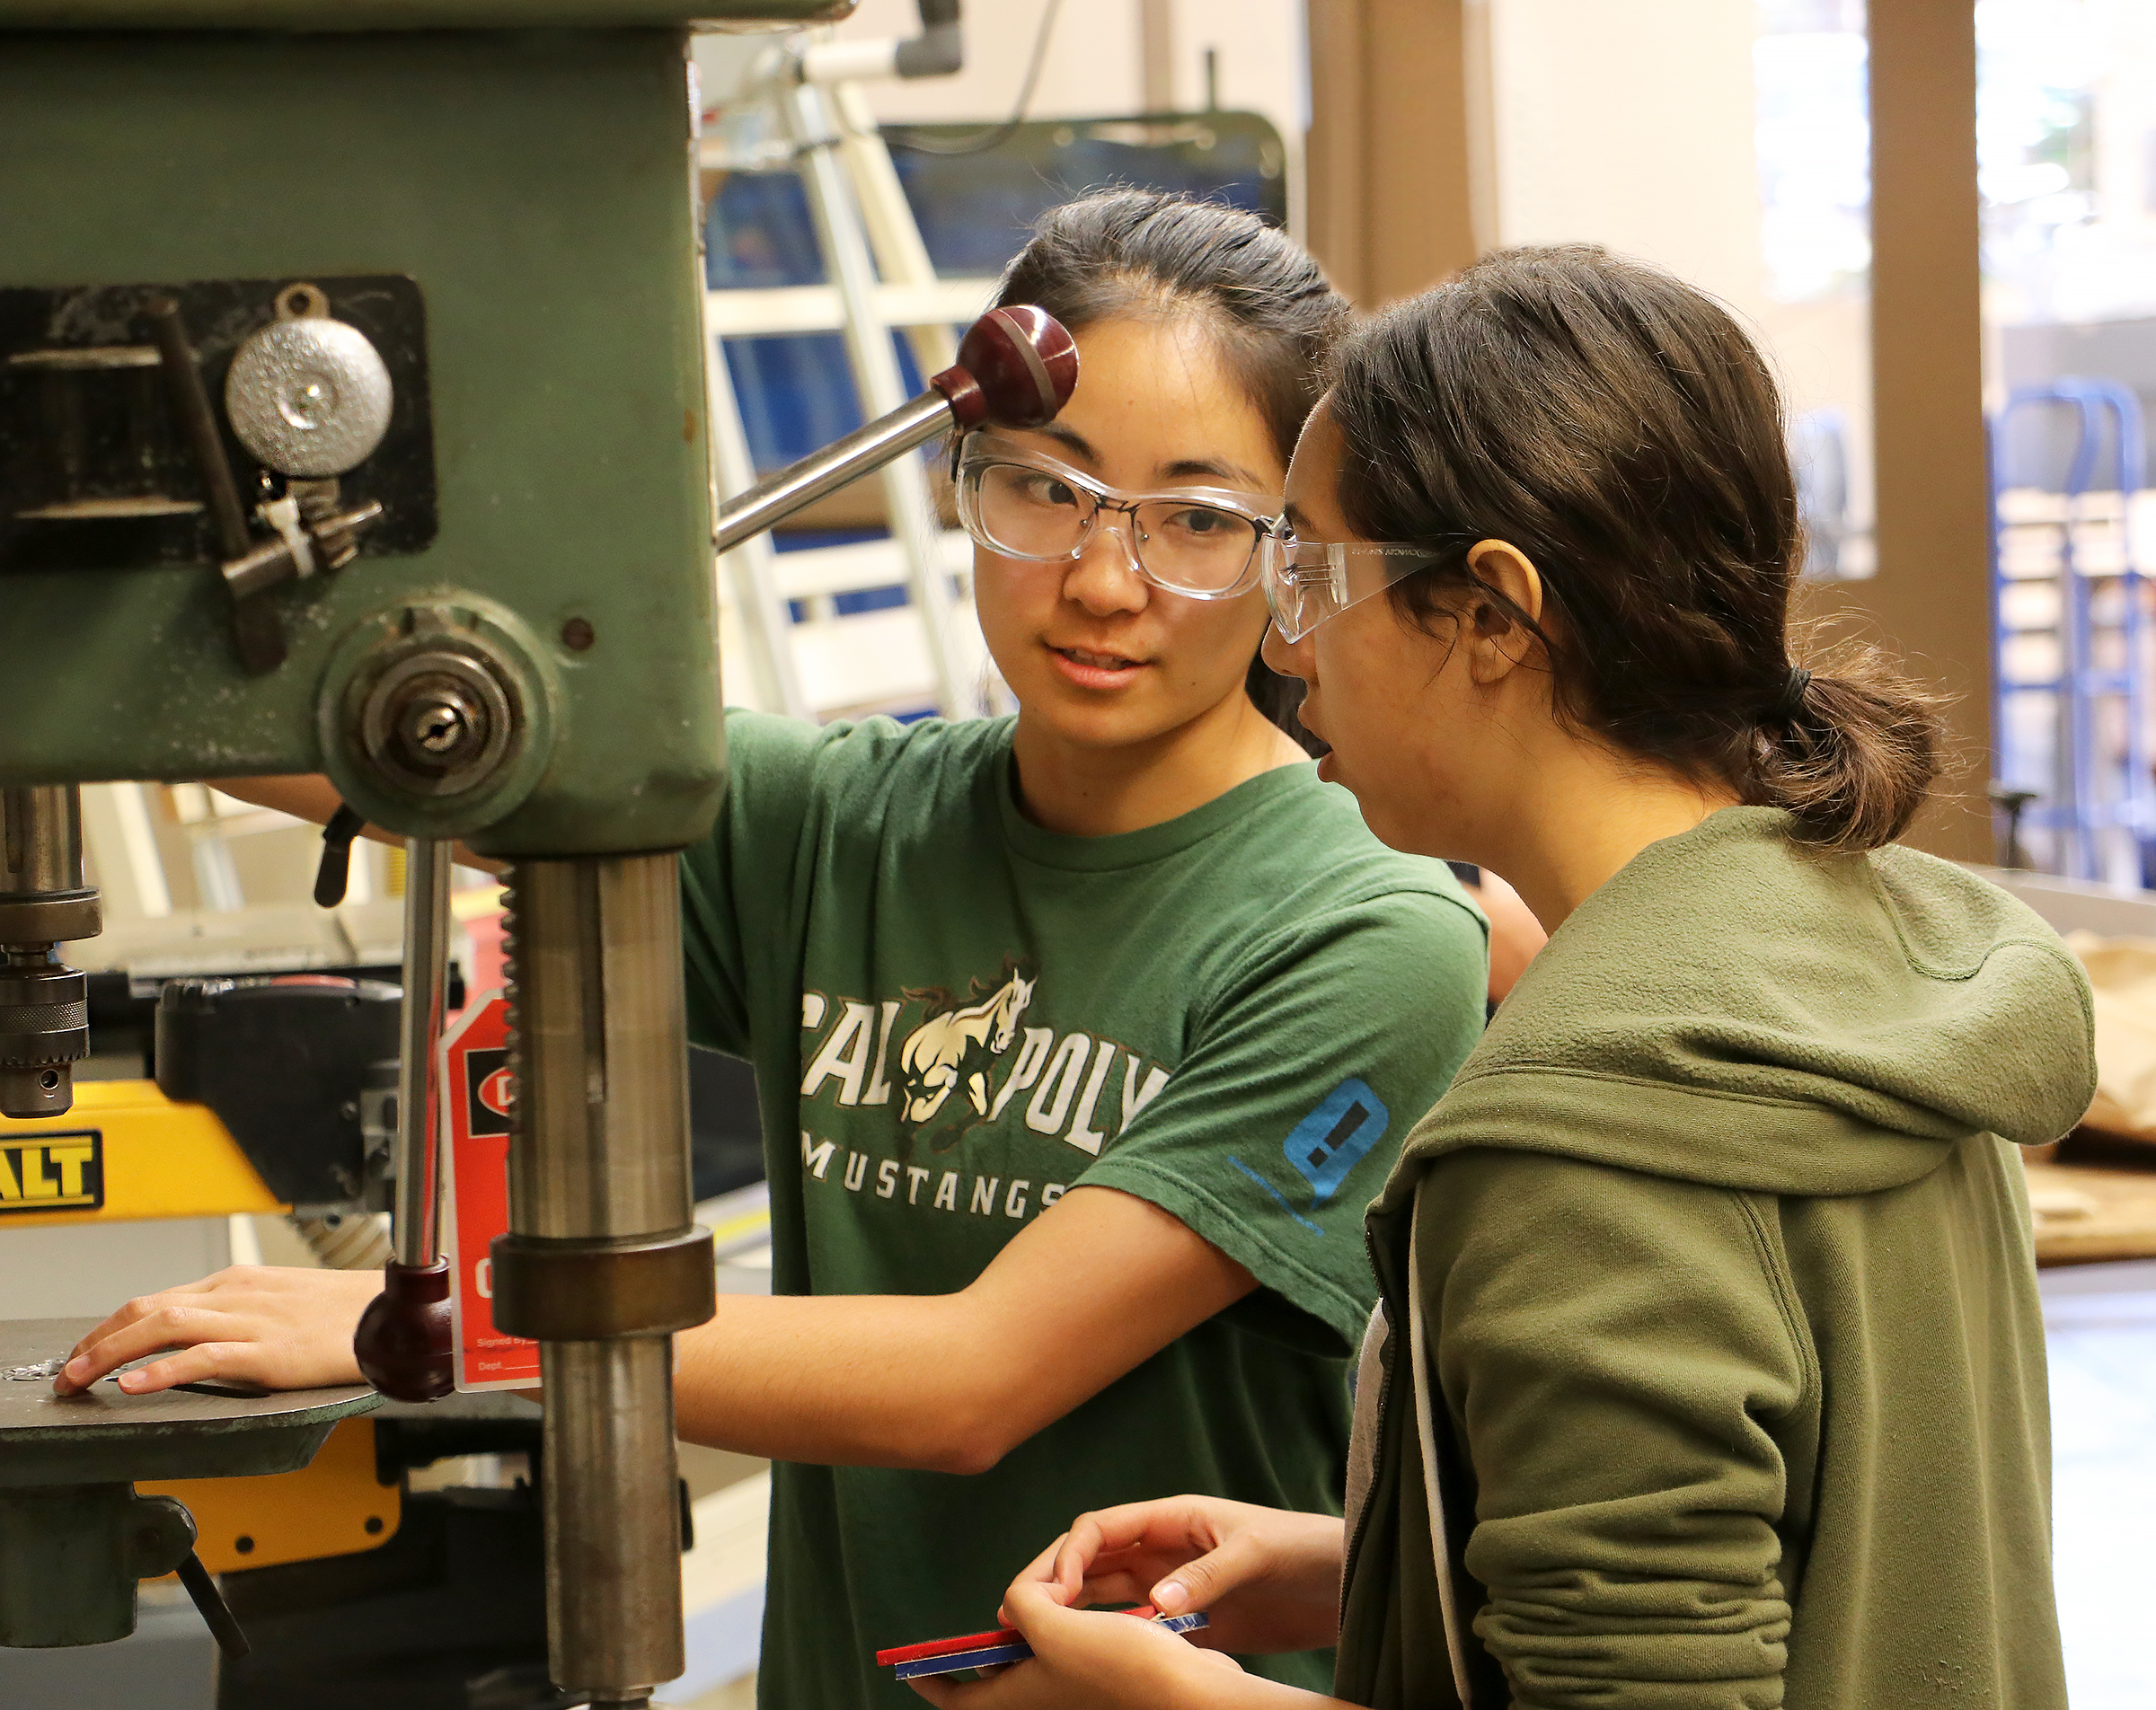 Two students wearing safety glasses and working with a shop drill press